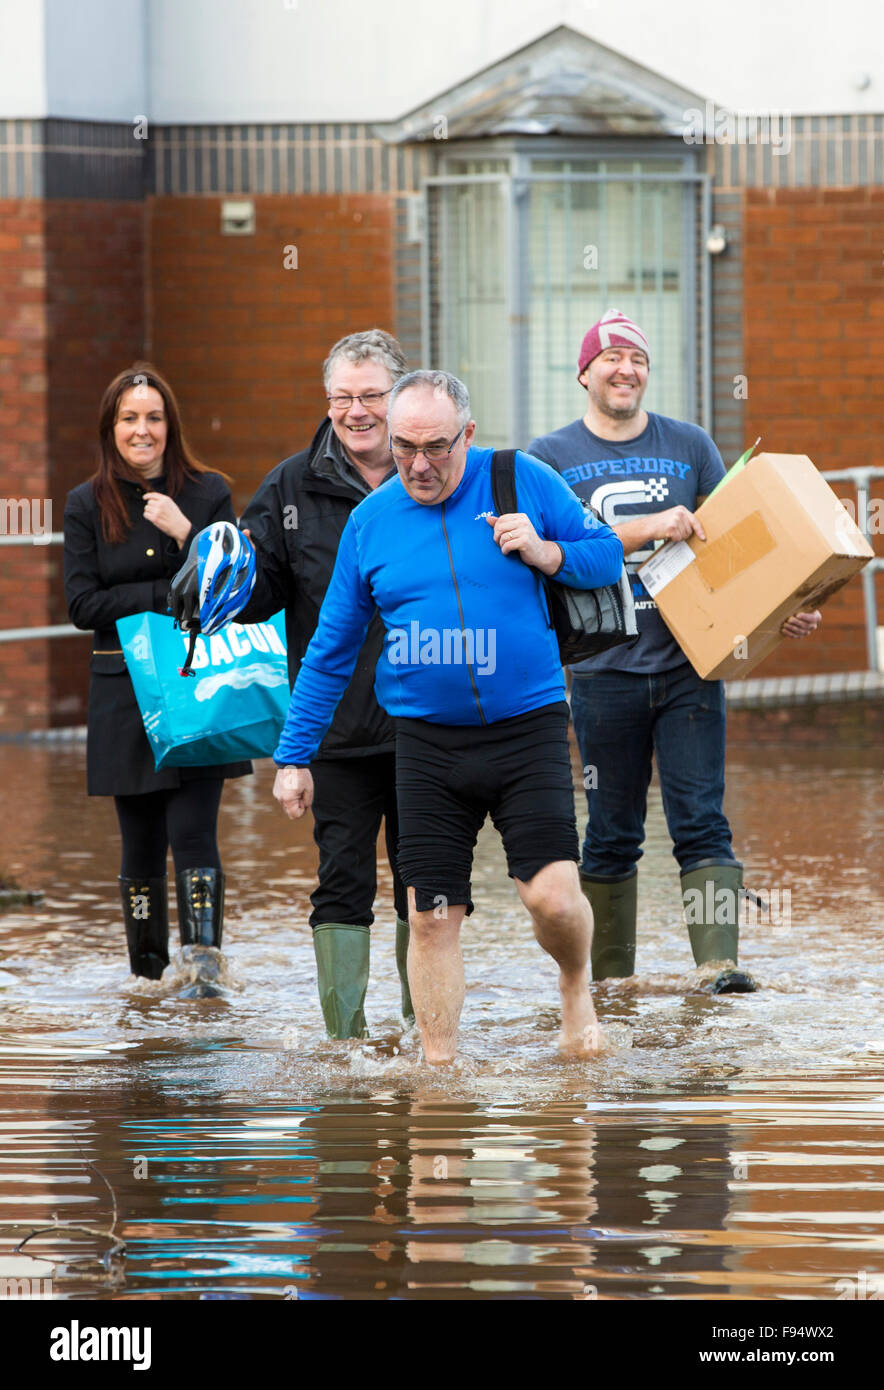 The irony of the t shirt. Carlisle Rugby Club members wade through the flood waters in Carlisle, Cumbria on Tuesday - Stock Image